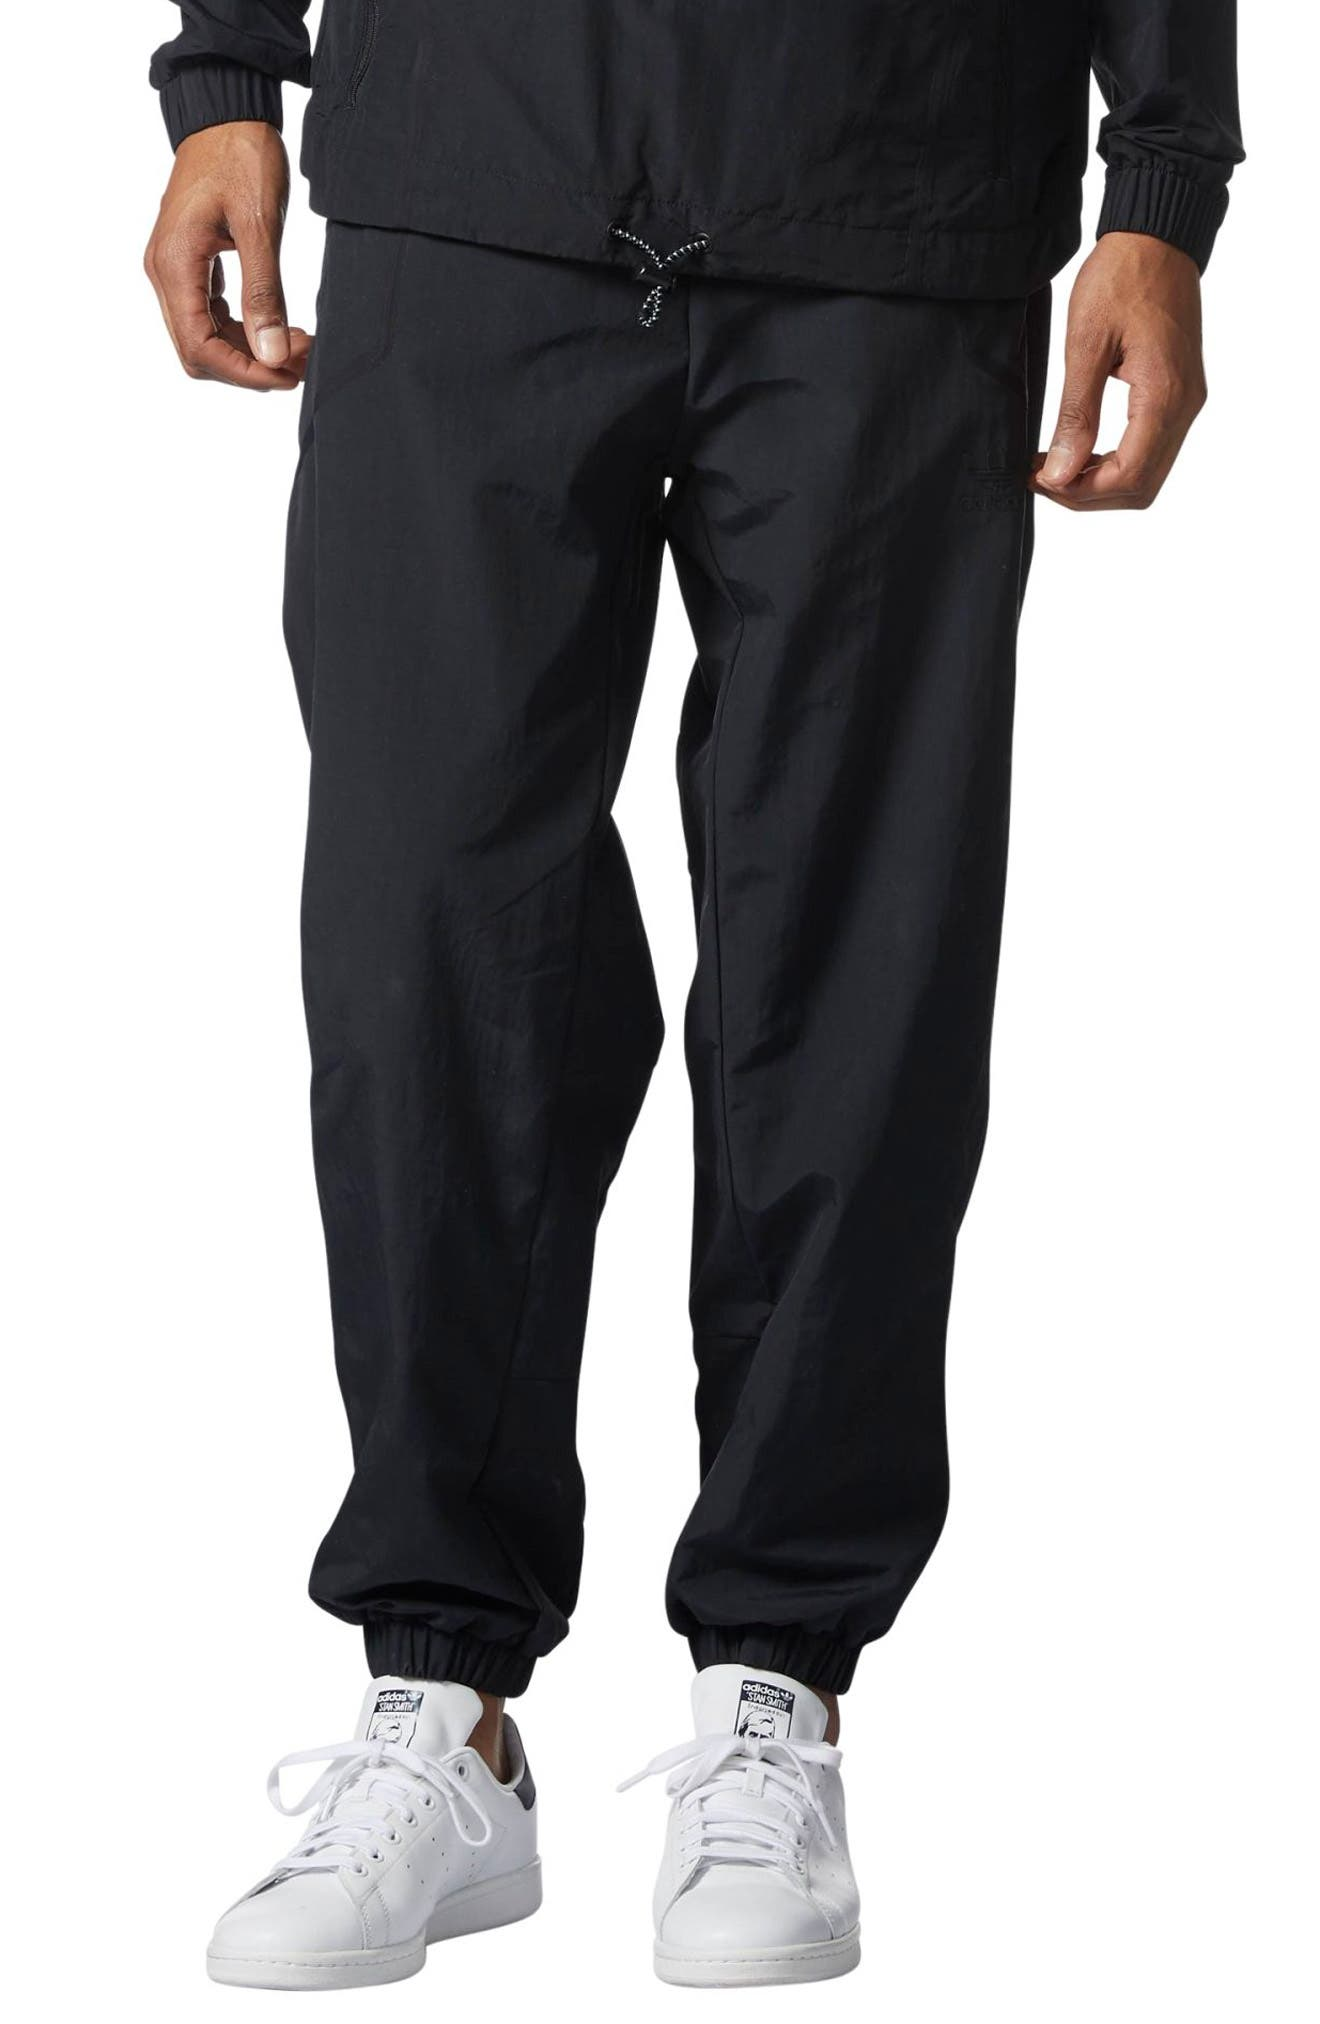 Originals Taped Wind Pants,                             Main thumbnail 1, color,                             Black